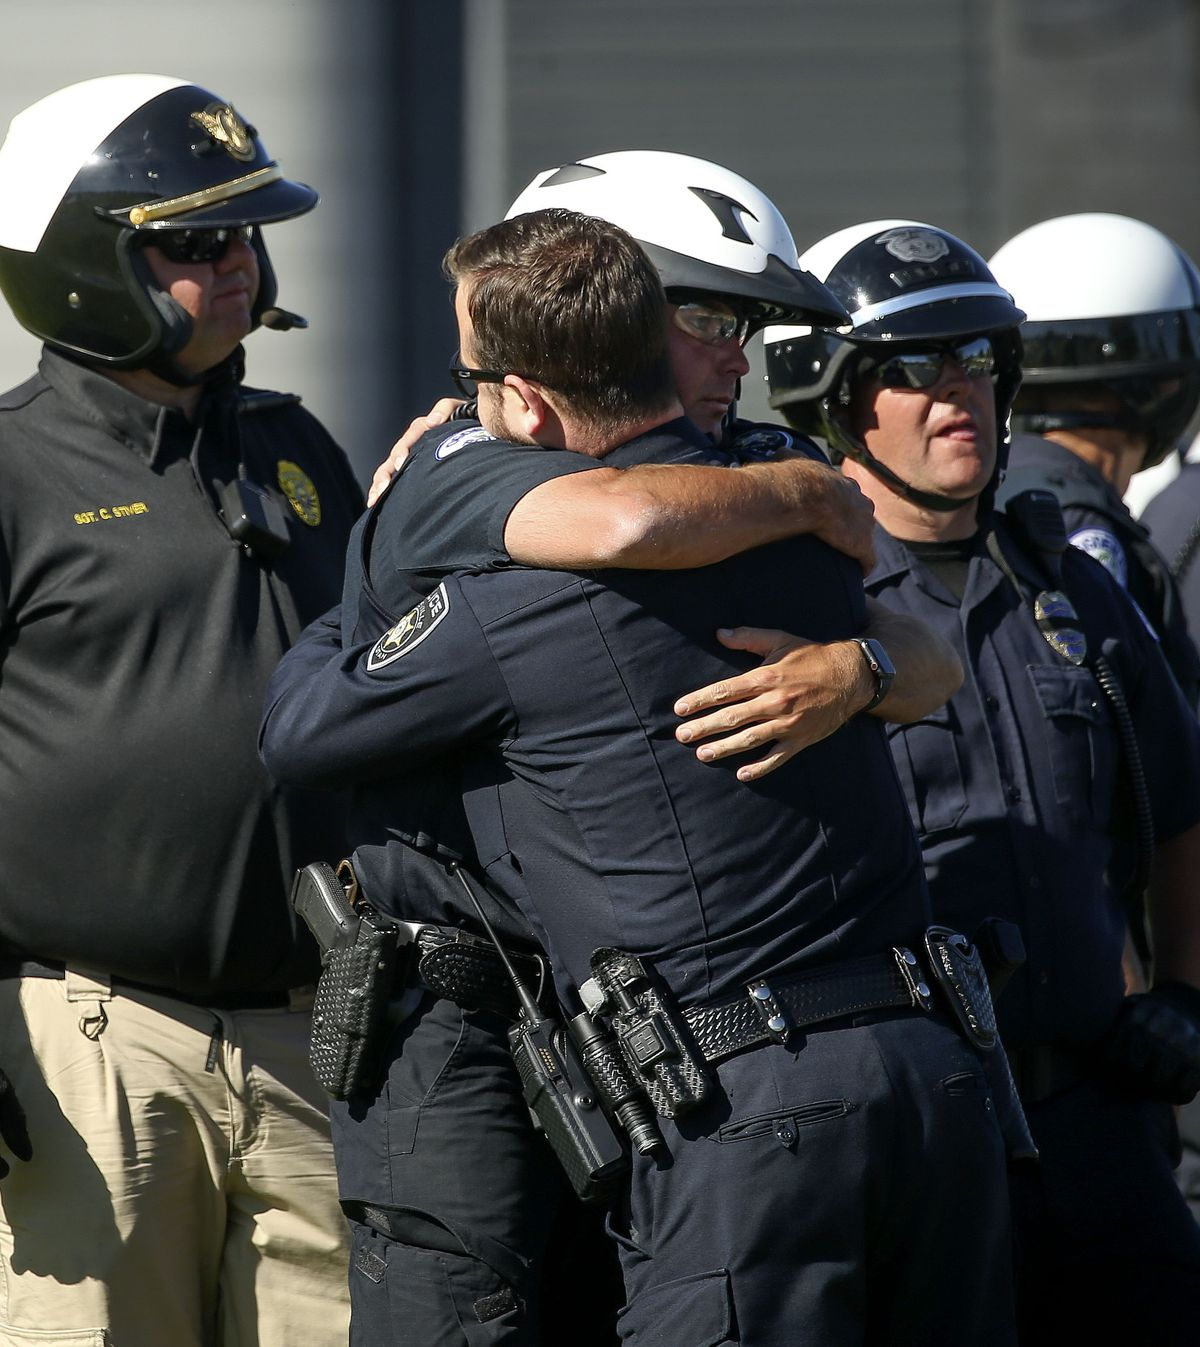 A Taylorsville and an Ogden law enforcement officer embrace after escorting the body of a fallen Ogden police officer to the Utah Medical Examiner's Office in Taylorsville on Thursday, May 28, 2020. Police said one officer and a suspect were killed, while another officer was injured, in an exchange of gunfire earlier in the day.